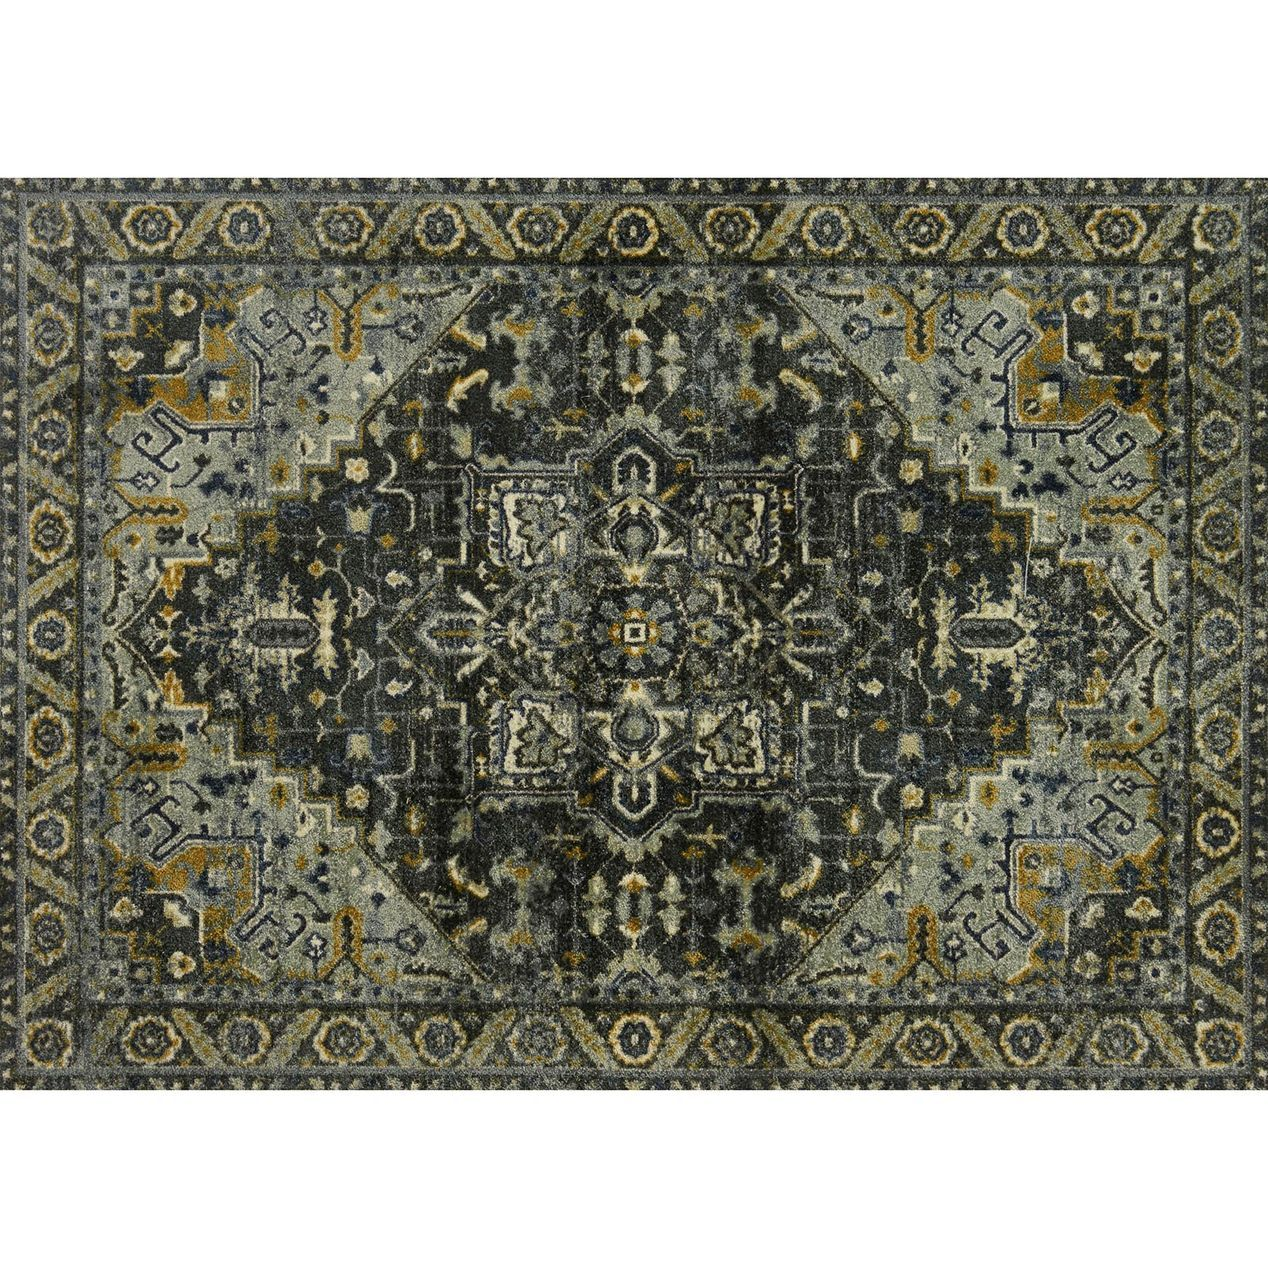 b466 vincent dark gray and spice rug in 2019 dan and carol living rh pinterest com